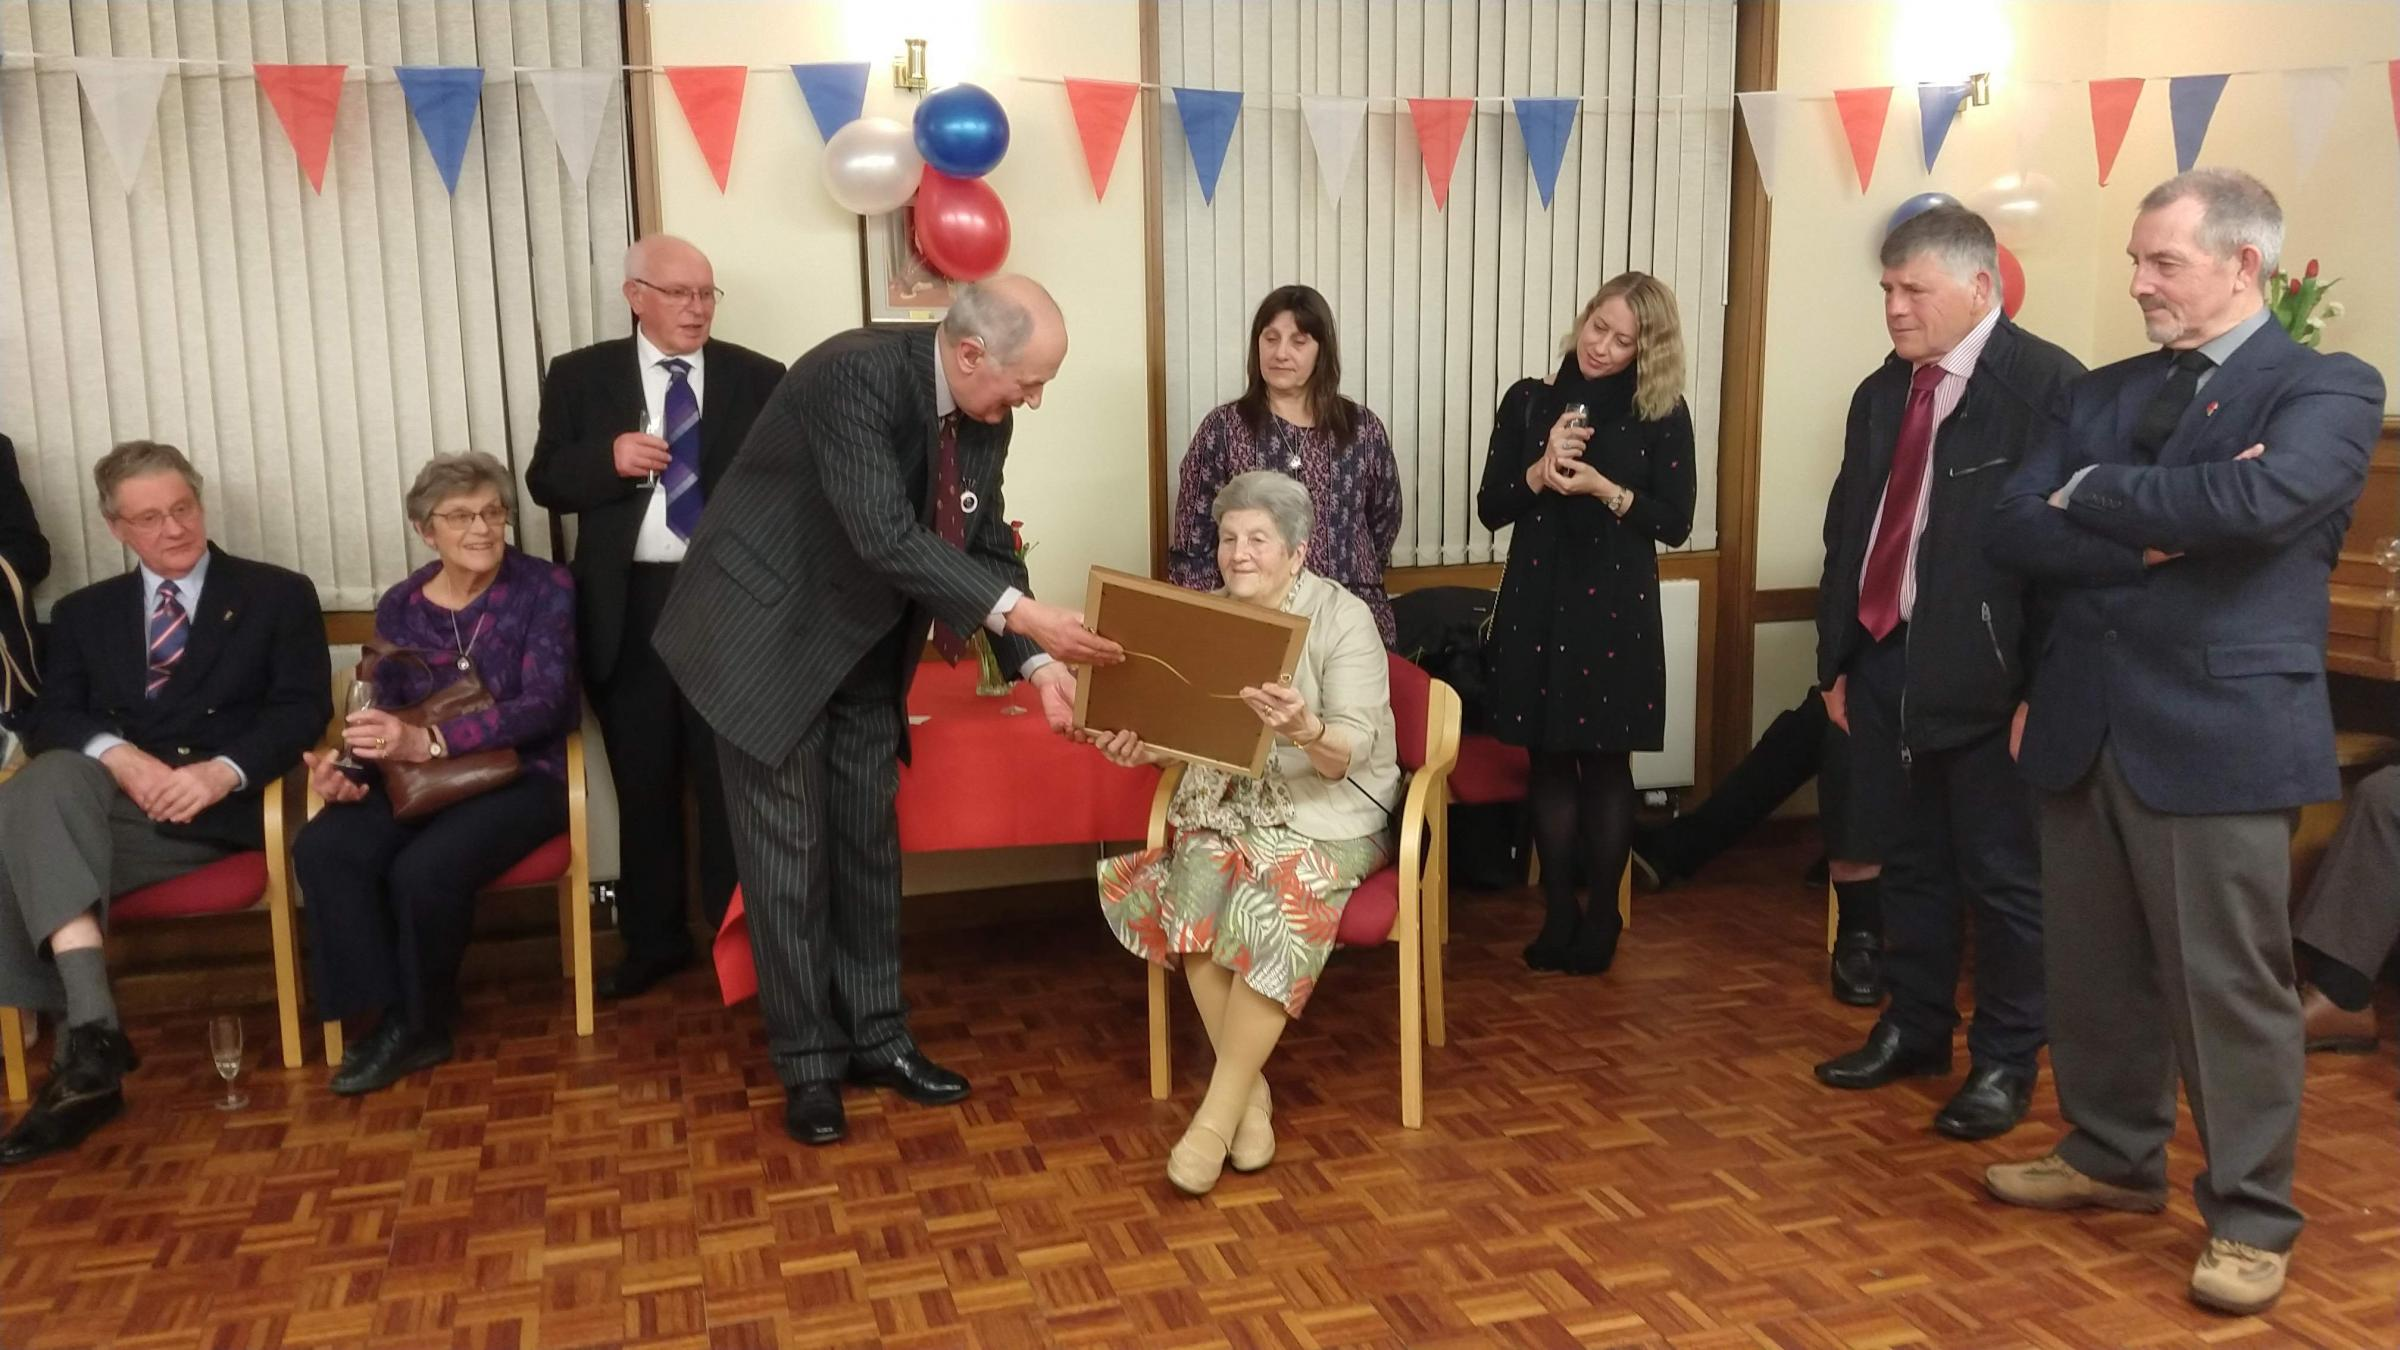 Dee Bulley awarded freedom of Carterton at town hall